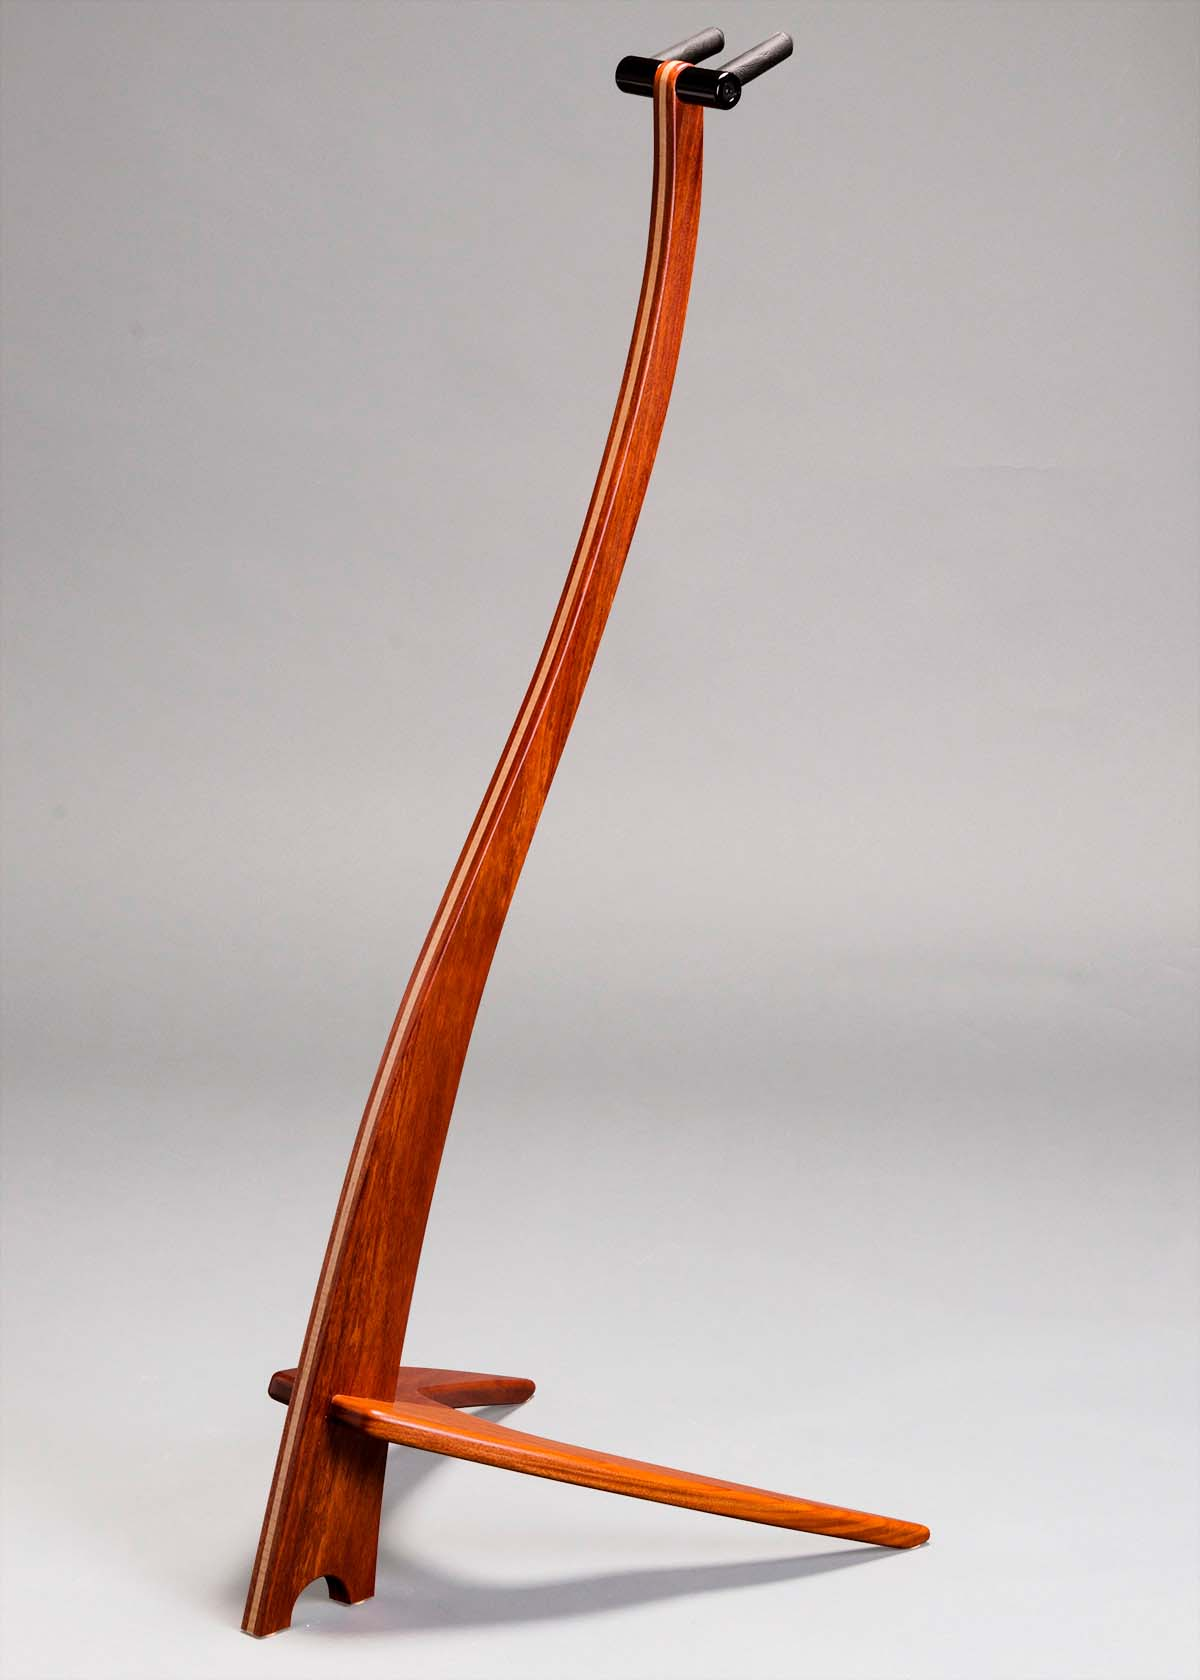 WM Guitar Stand in Santos Mahogany with Curly Maple Inlay